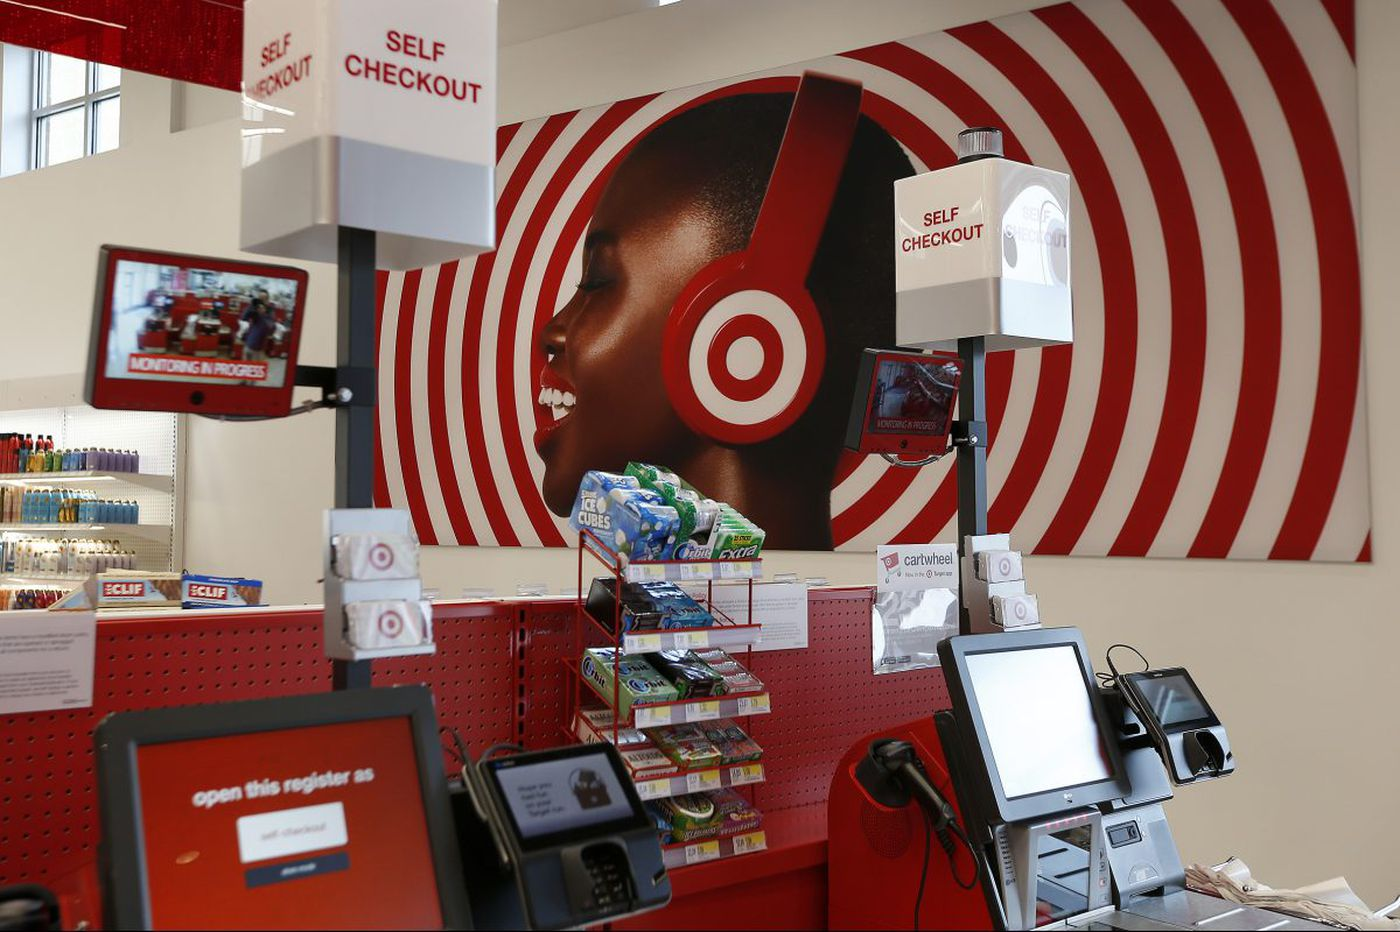 Philly's 4th mini-Target opens at 7 a.m. Wednesday in Art Museum area